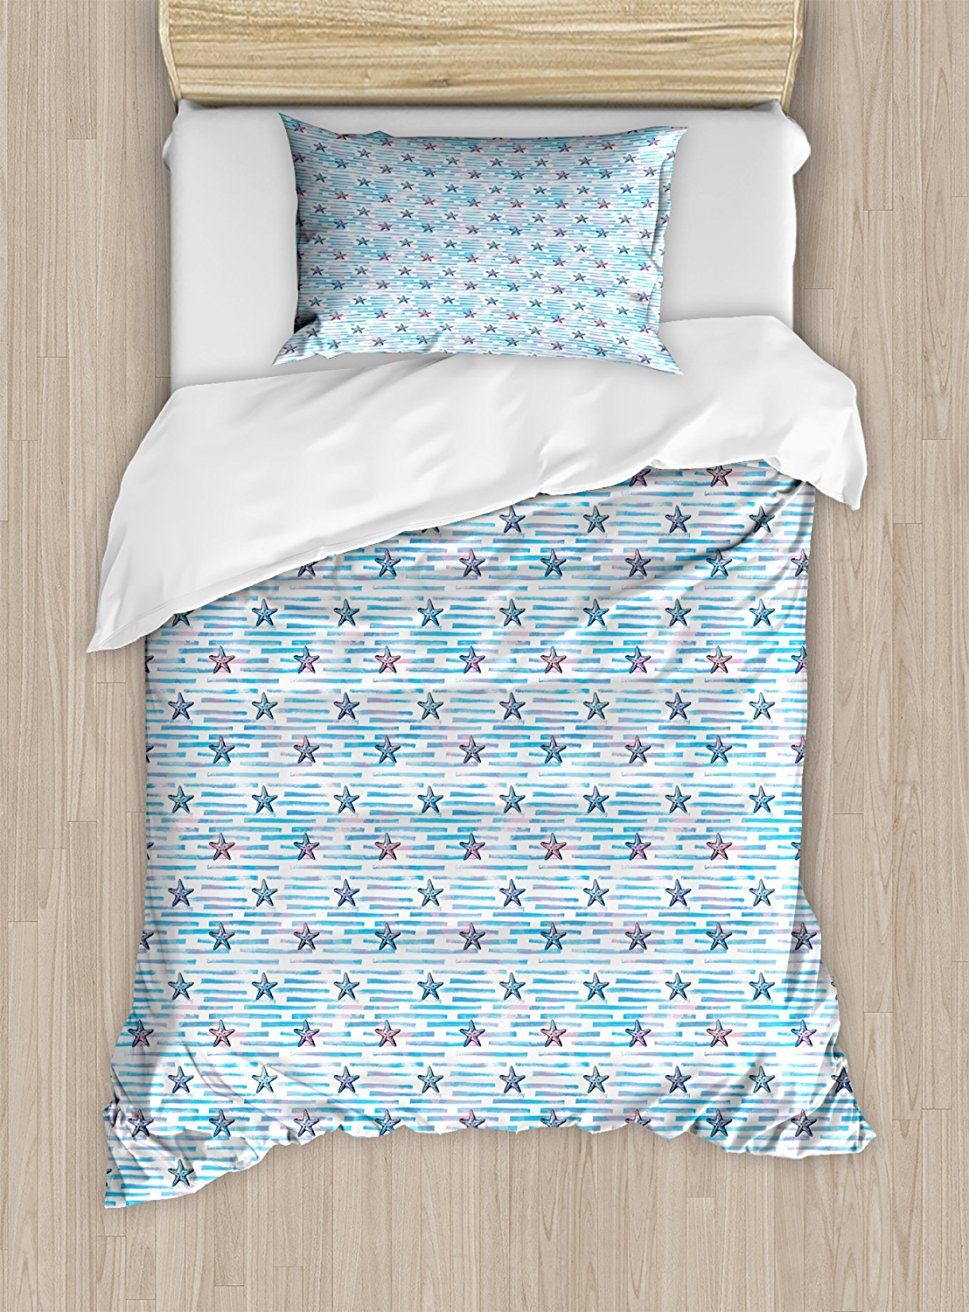 Starfish Duvet Cover Set, Blue Toned Stripes with Brush Stroke Effect Aquamarine Animals Pattern 4 Piece Bedding Set